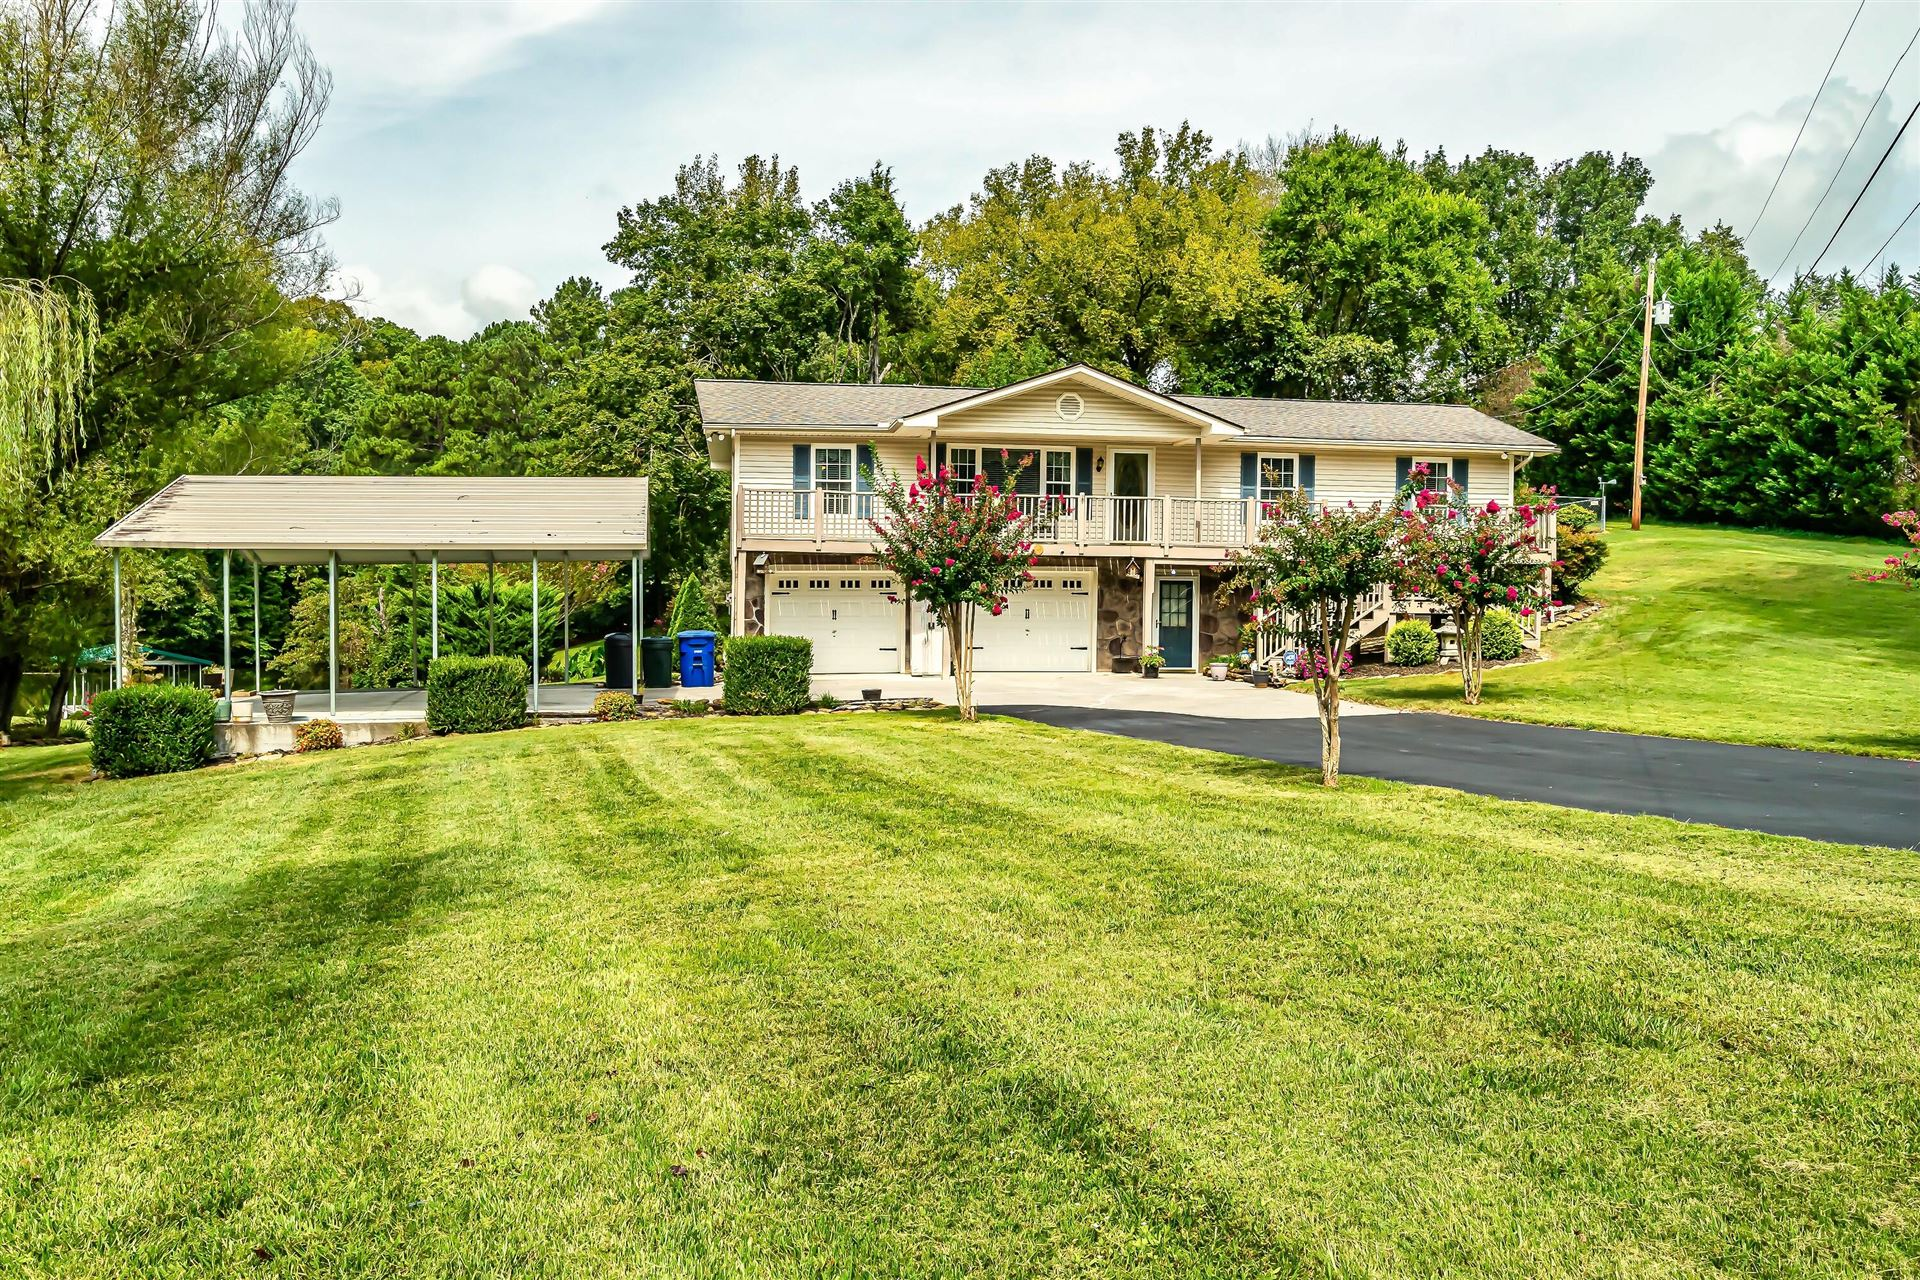 Photo of 4905 Sparks Rd, Knoxville, TN 37931 (MLS # 1167884)